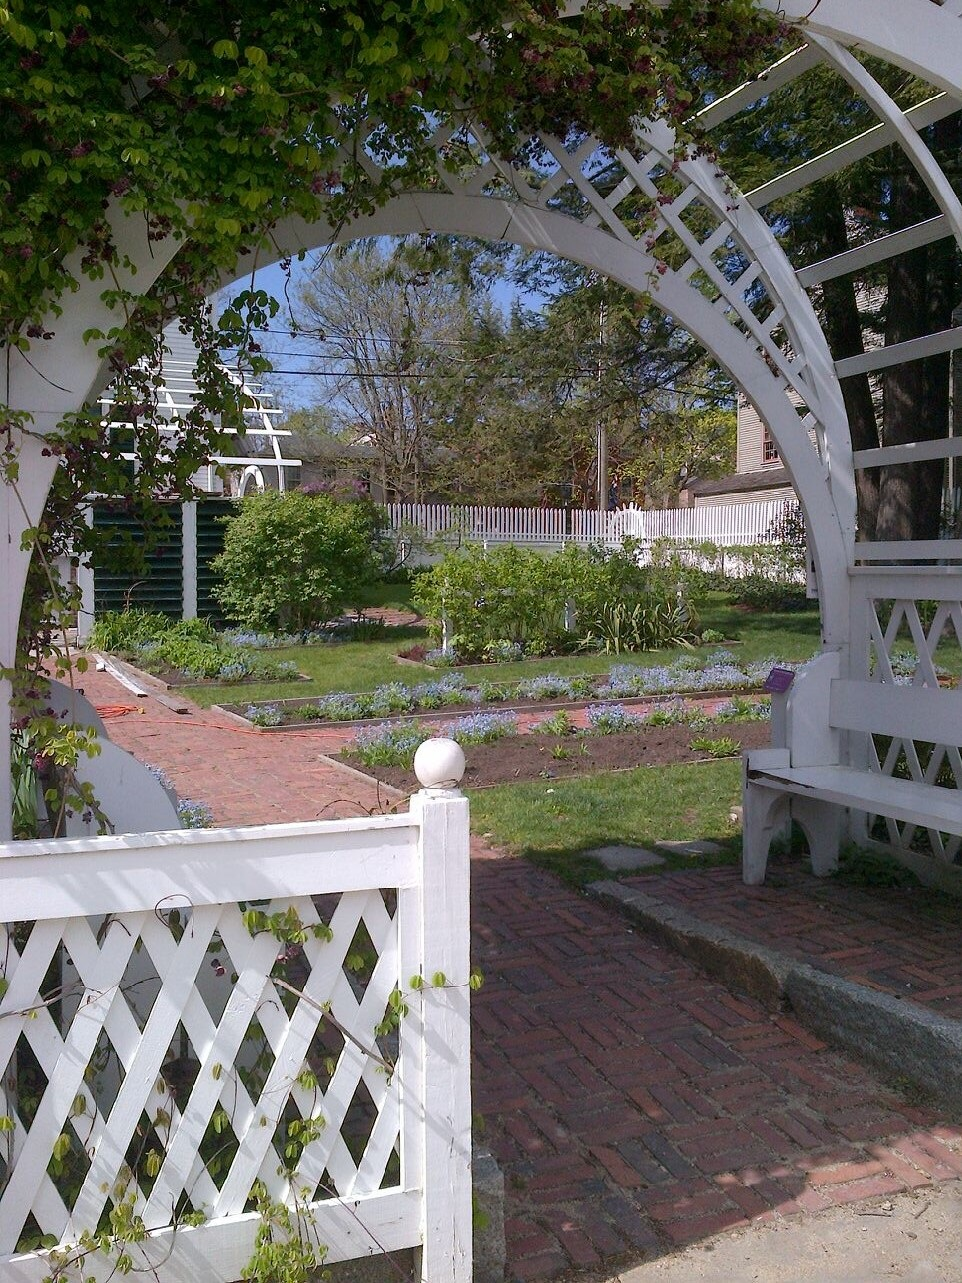 Entrance to the Aldrich Garden in Strawberry Banke, a historical neighborhood and museum in Portsmouth, N.H. ,featuring 37 restored buildings erected between the 17th and early 19th centuries.    — Photo by Sseacord